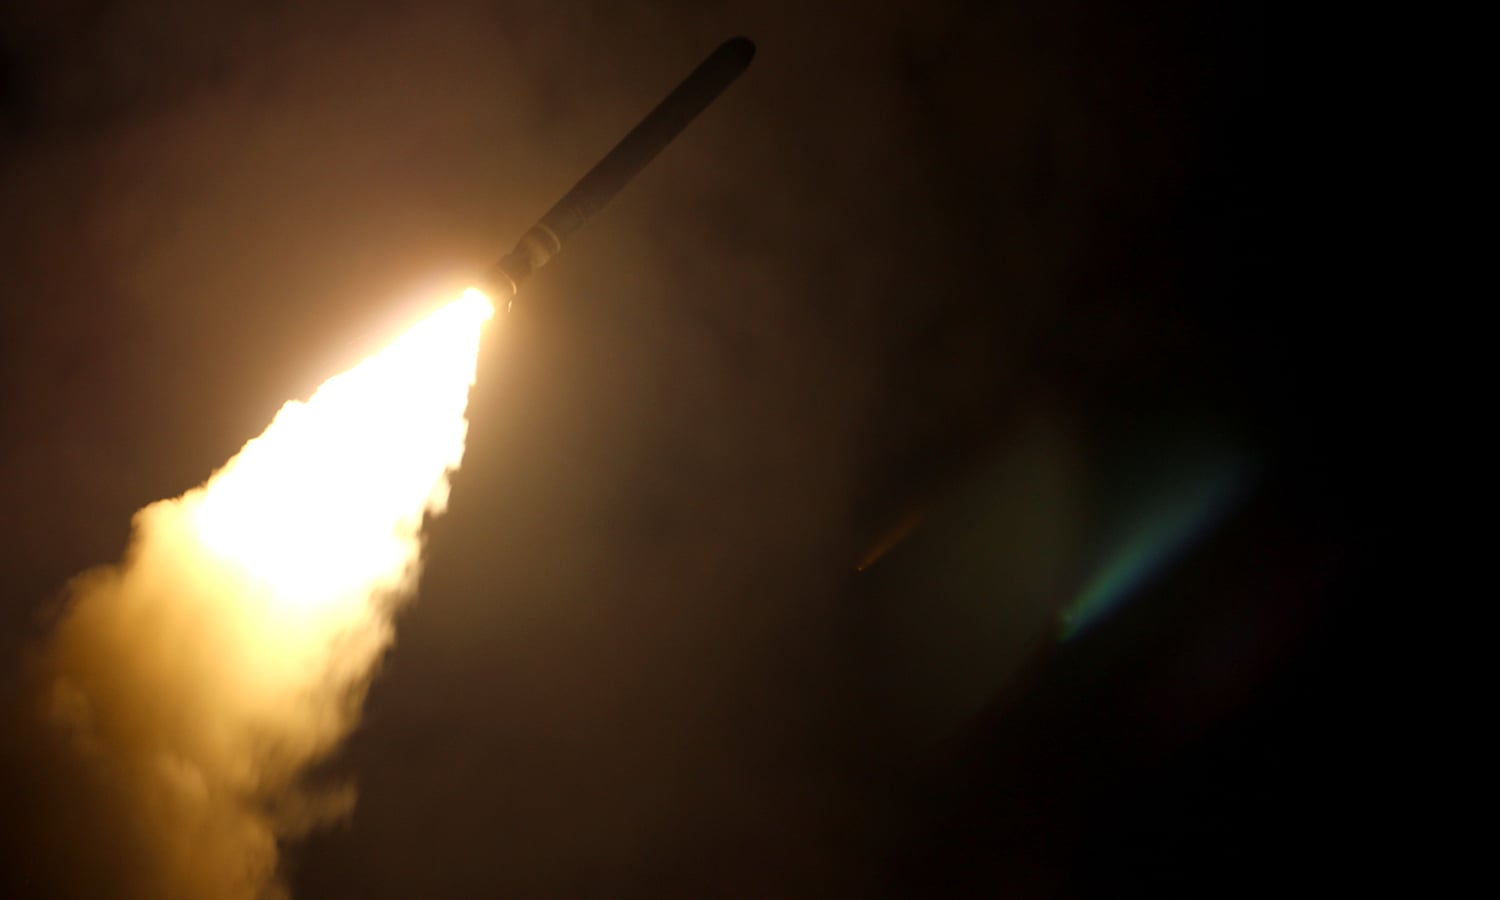 In this image released by the US Department of Defense the guided-missile cruiser USS Monterey fires a Tomahawk land attack missile on April 14, 2018. —AFP